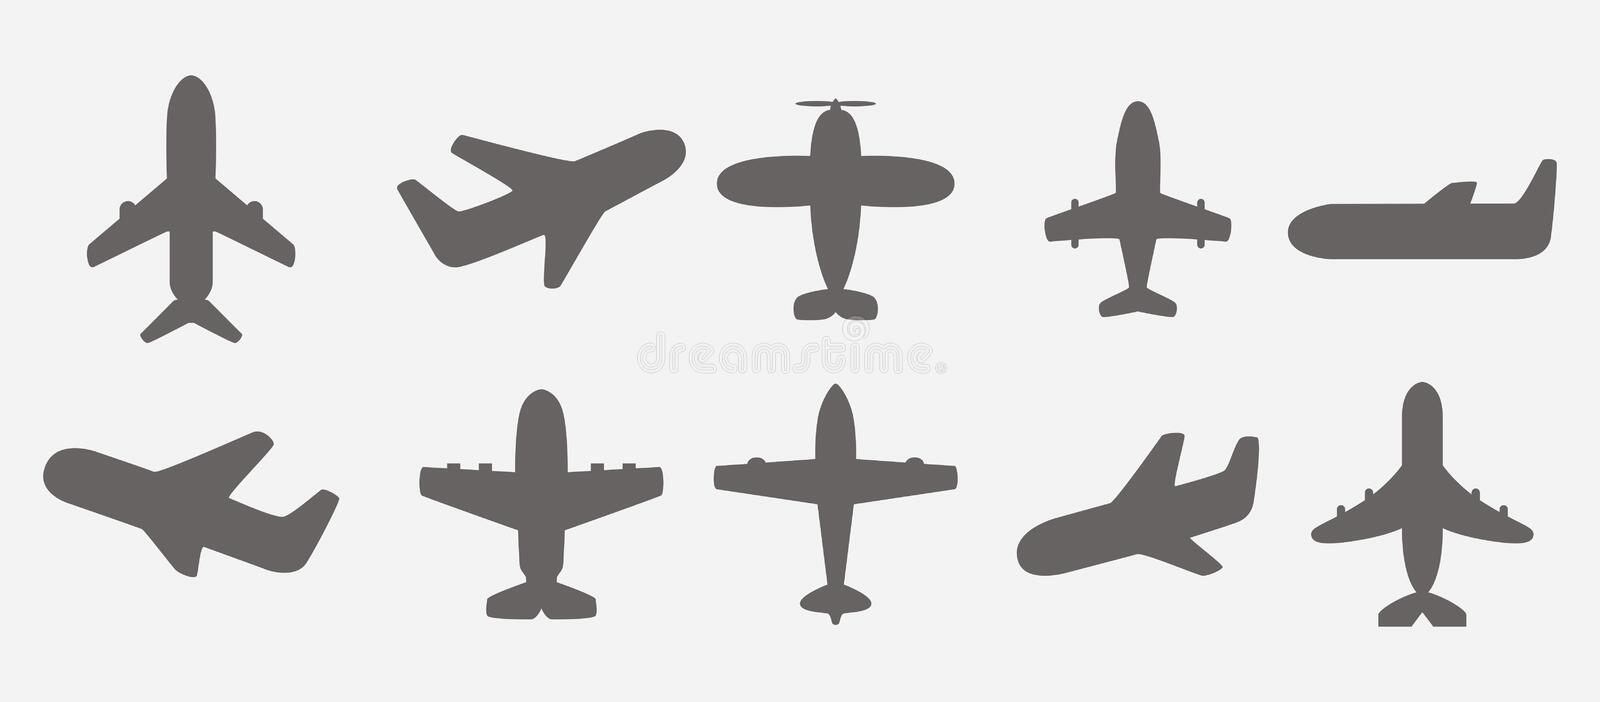 Vecteur d'icônes d'avion illustration stock